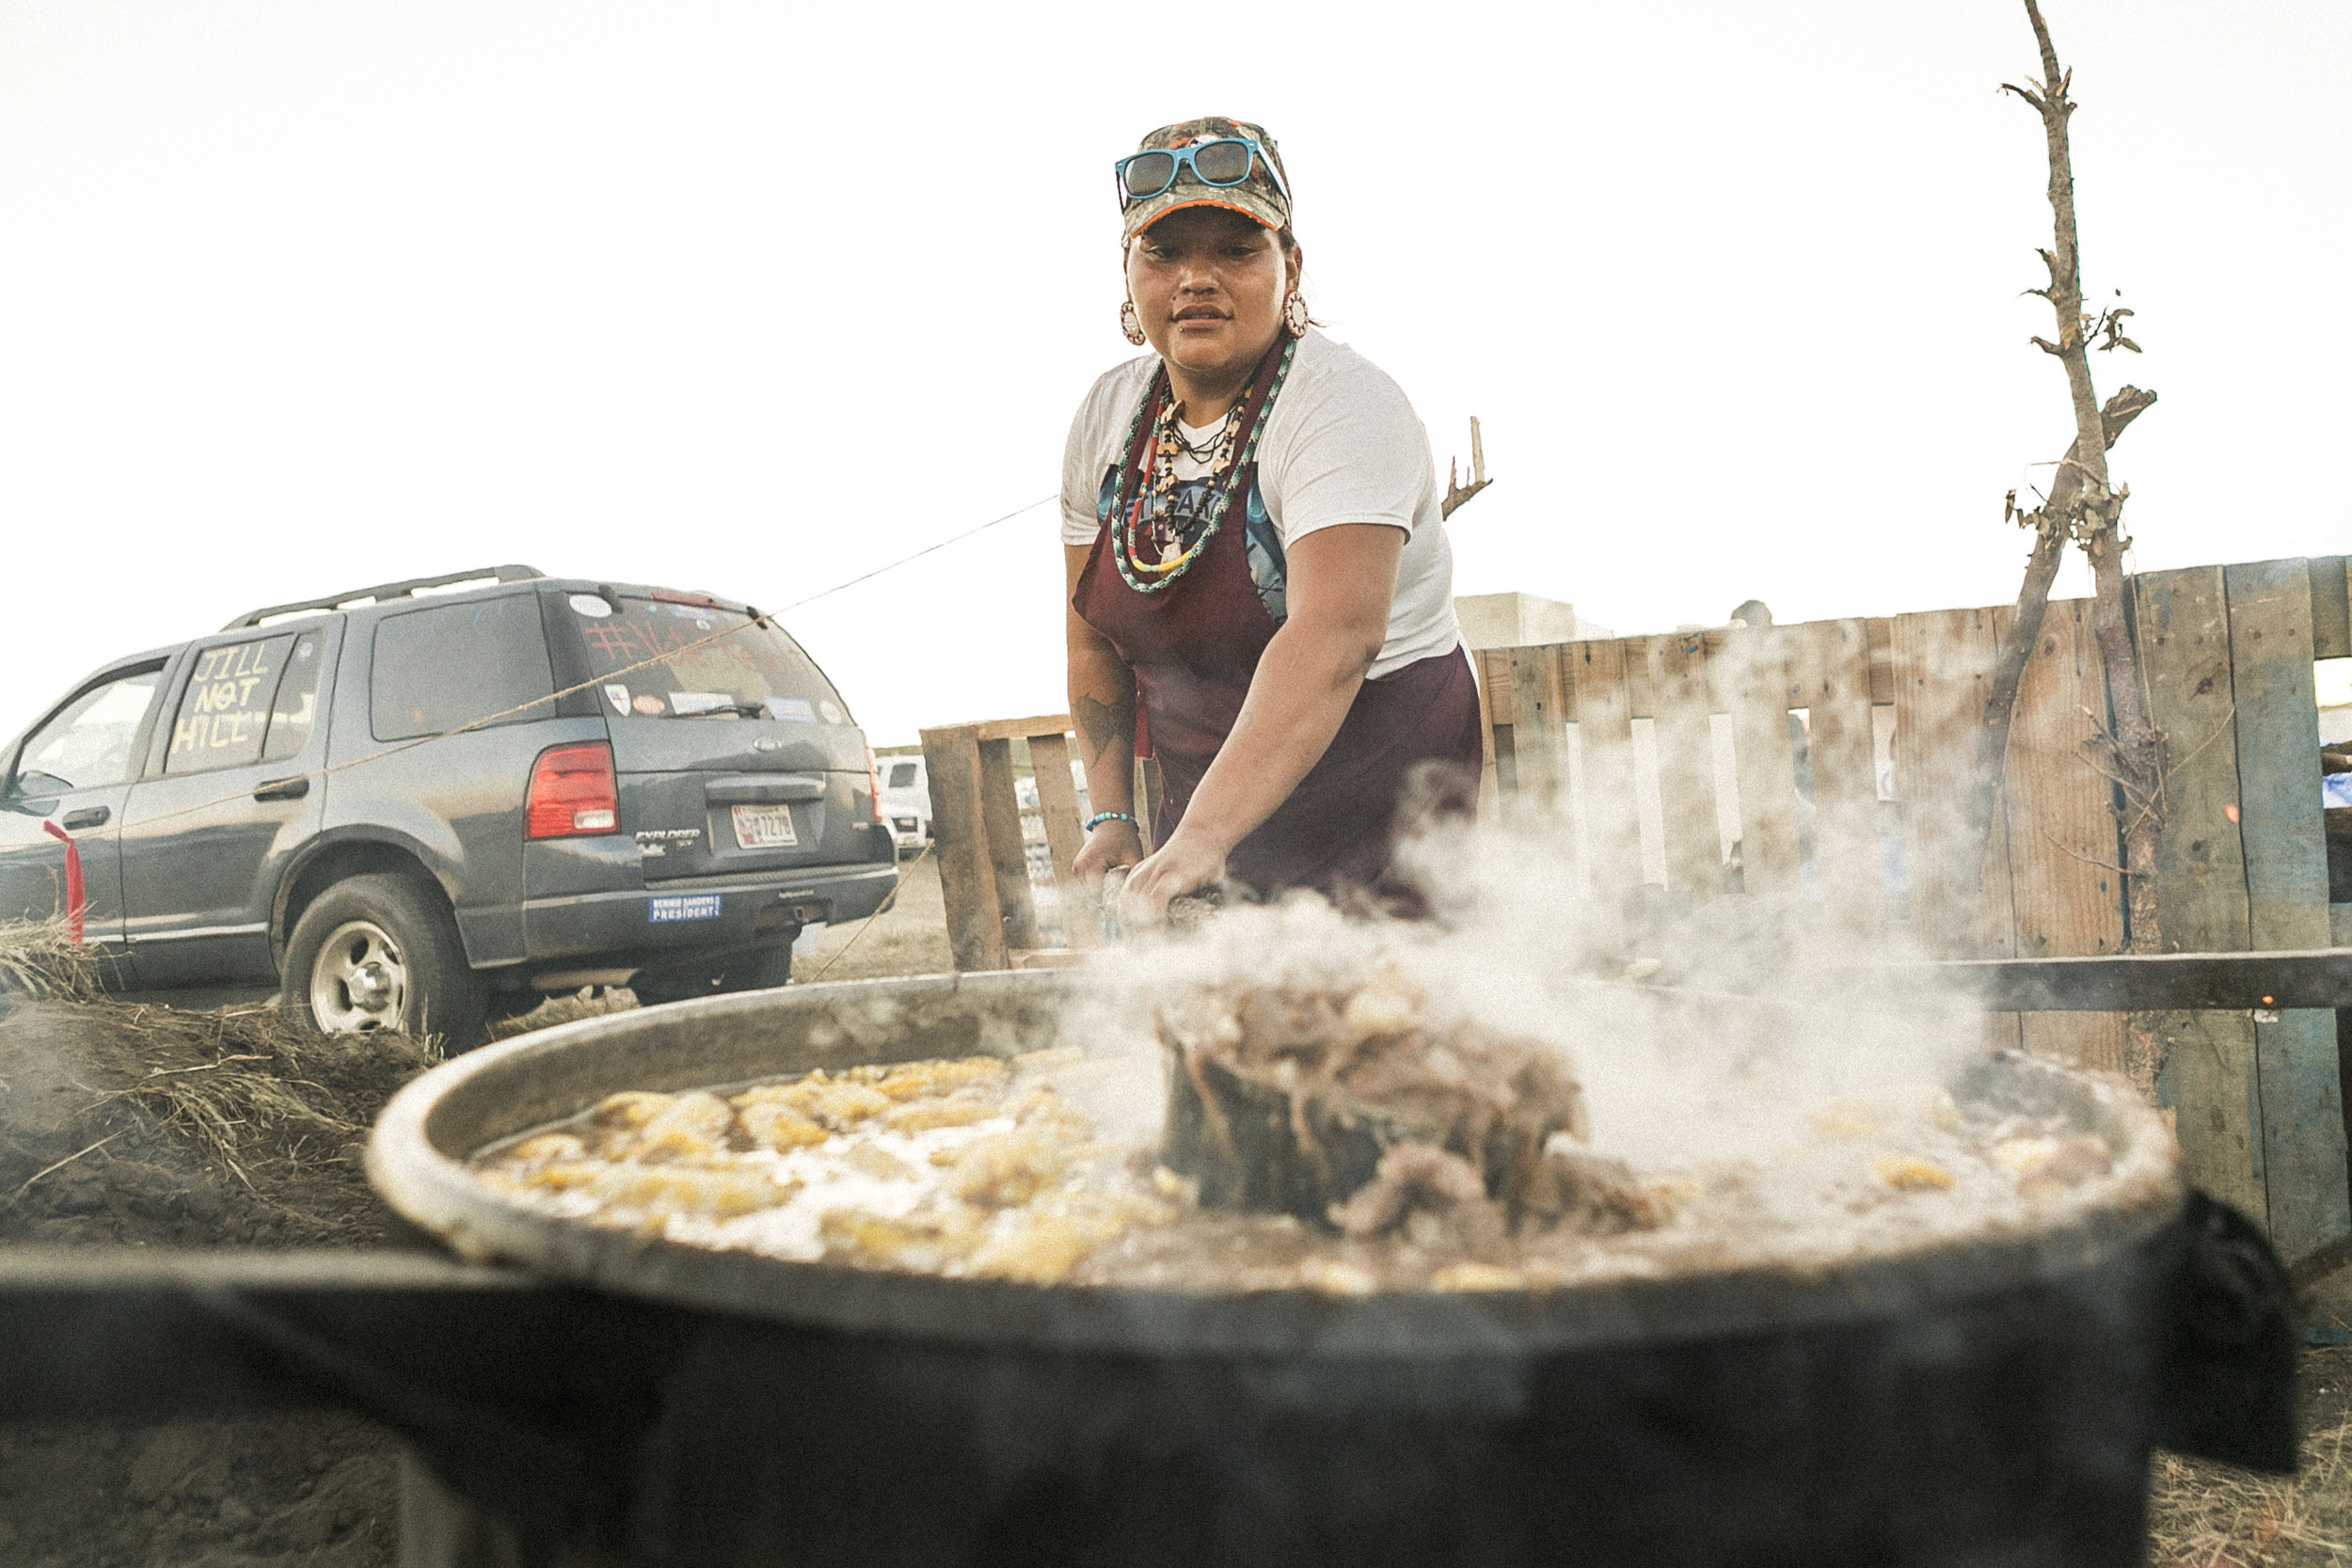 Nantinki Young , 27, Santee, South Dakota: 'I support the camp by providing energy and strength through the meals we prepare each day. I make sure everyone that comes here has something to eat even if it's just a snack in between meals.'